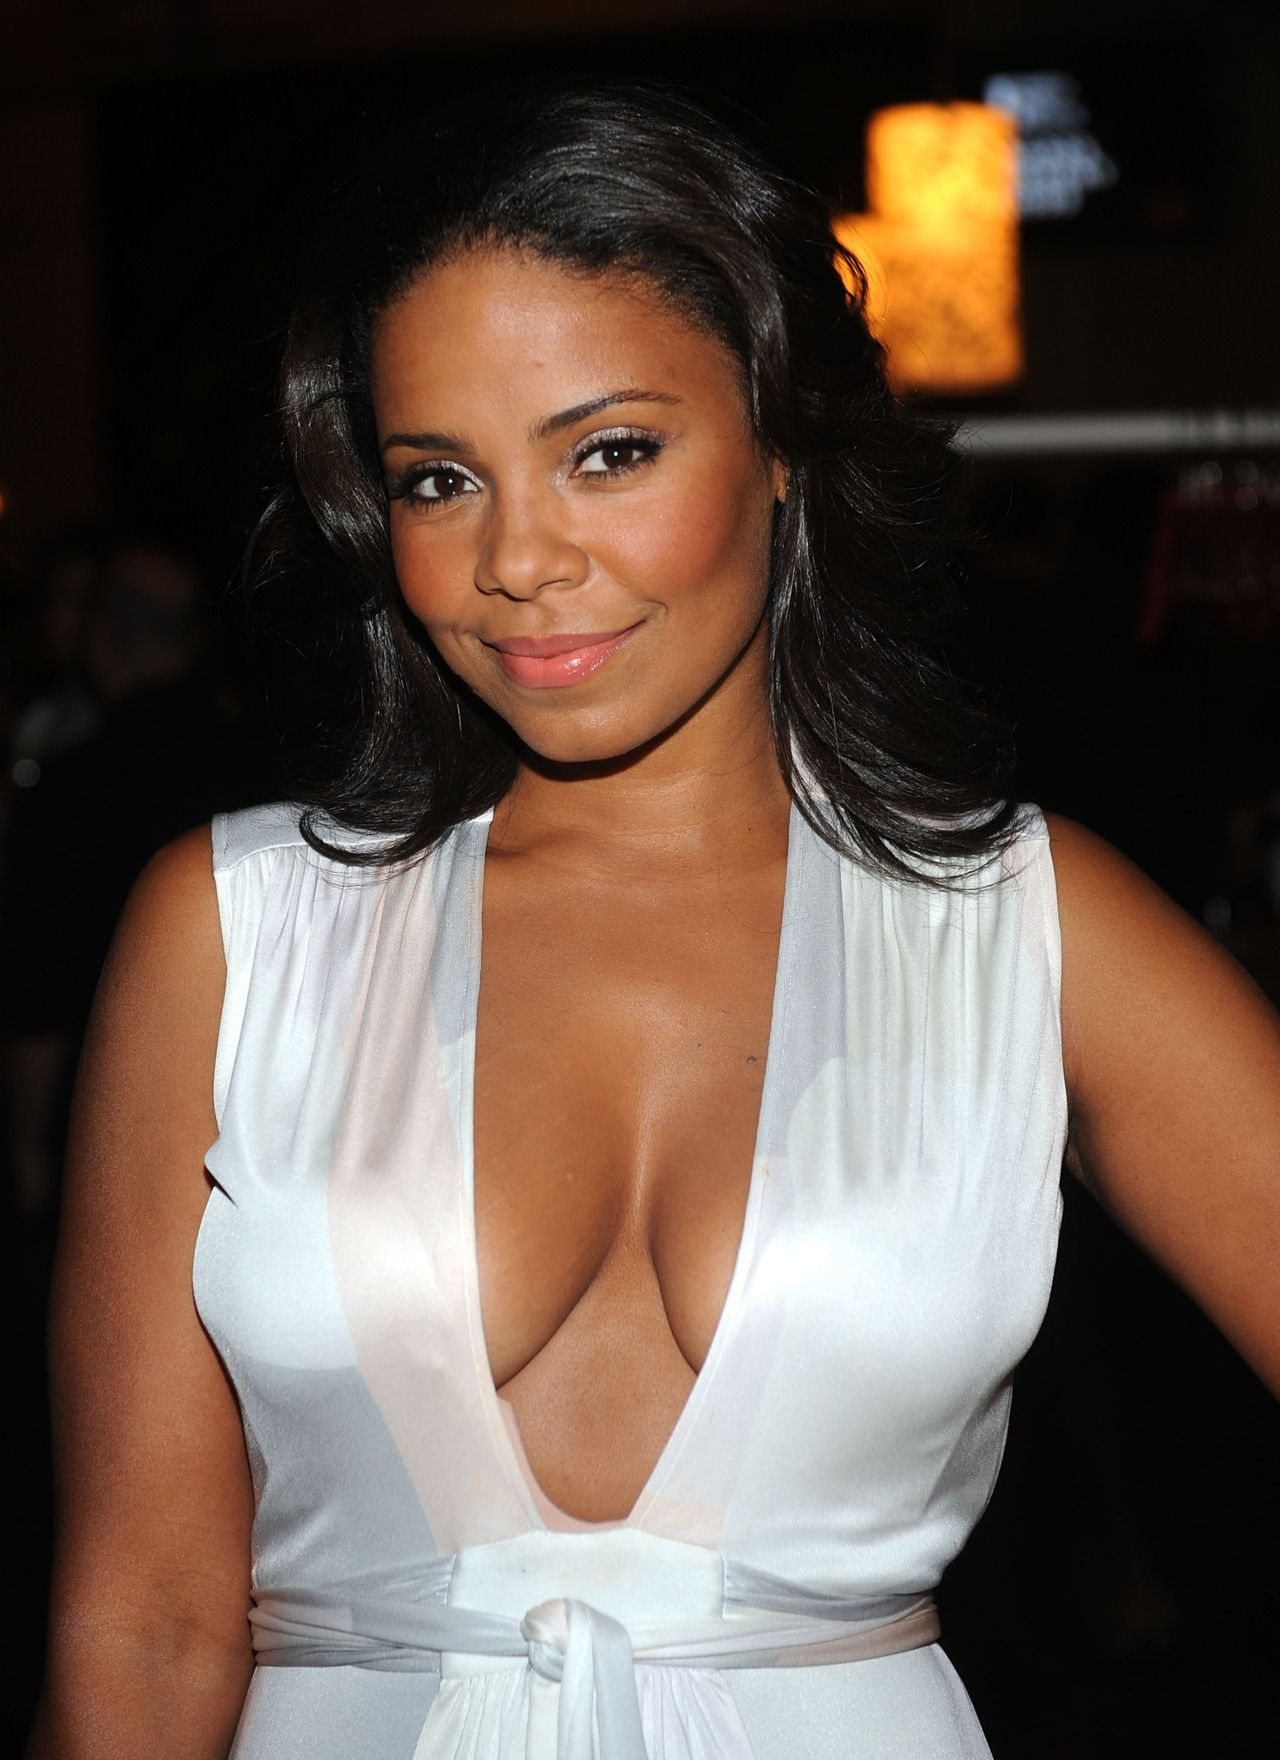 Nude pictures of sanaa lathan that interrupt